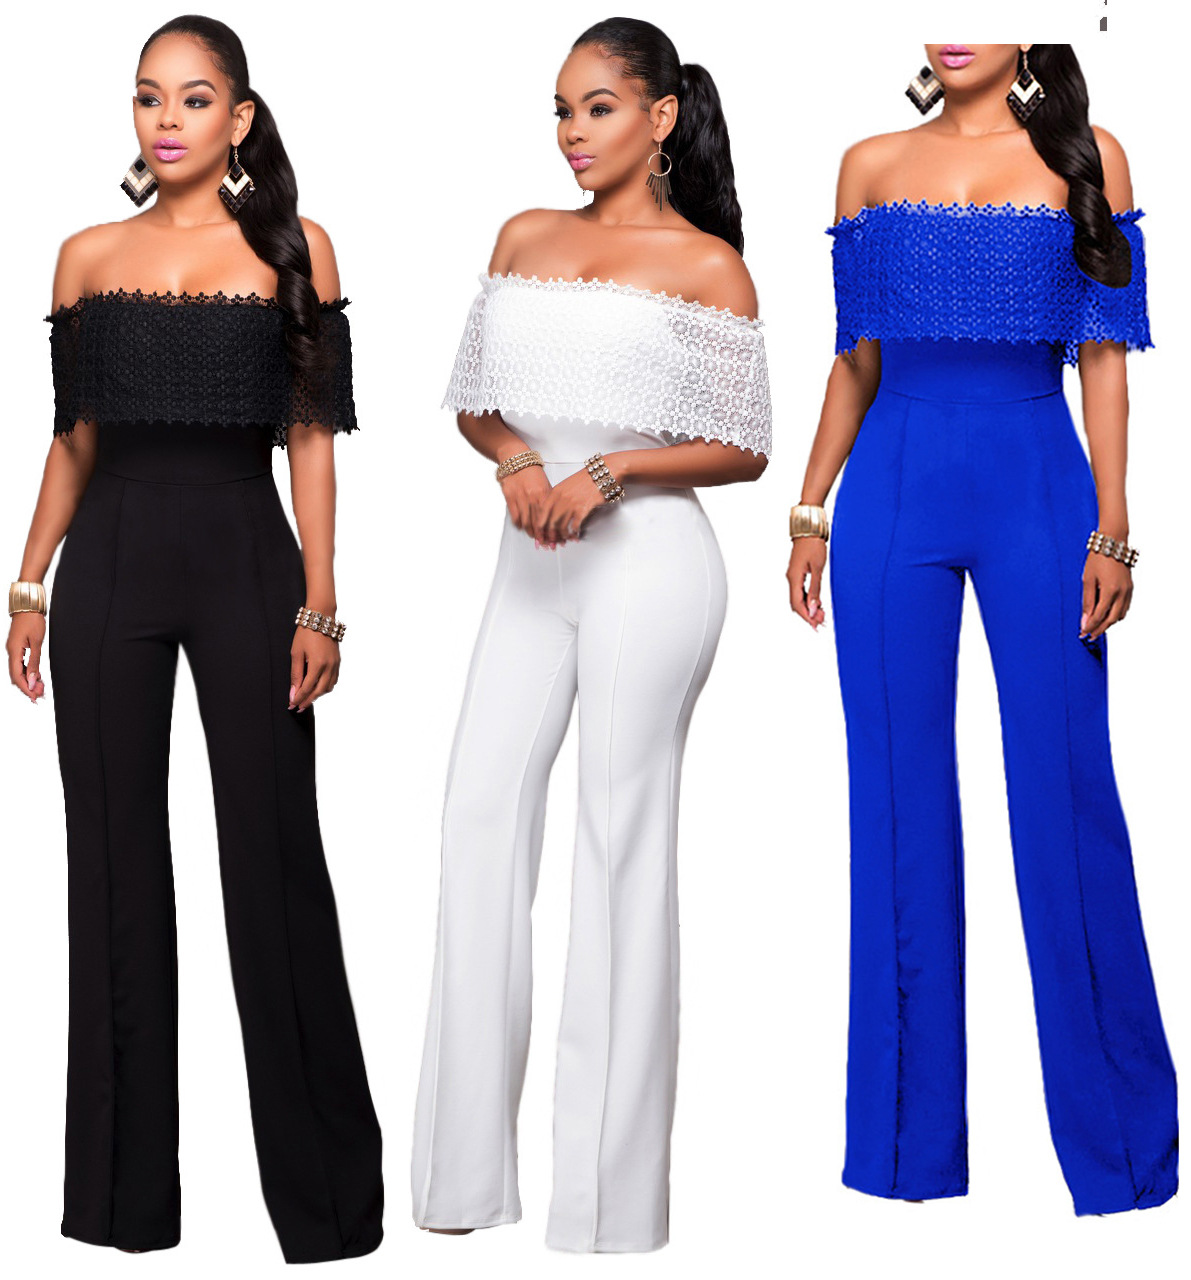 Off Shoulder Women Jumpsuits Sheerness Strapless Sexy Slim Party Bodysiuts Female Casual Loose Palazzo Pants Black Trousers